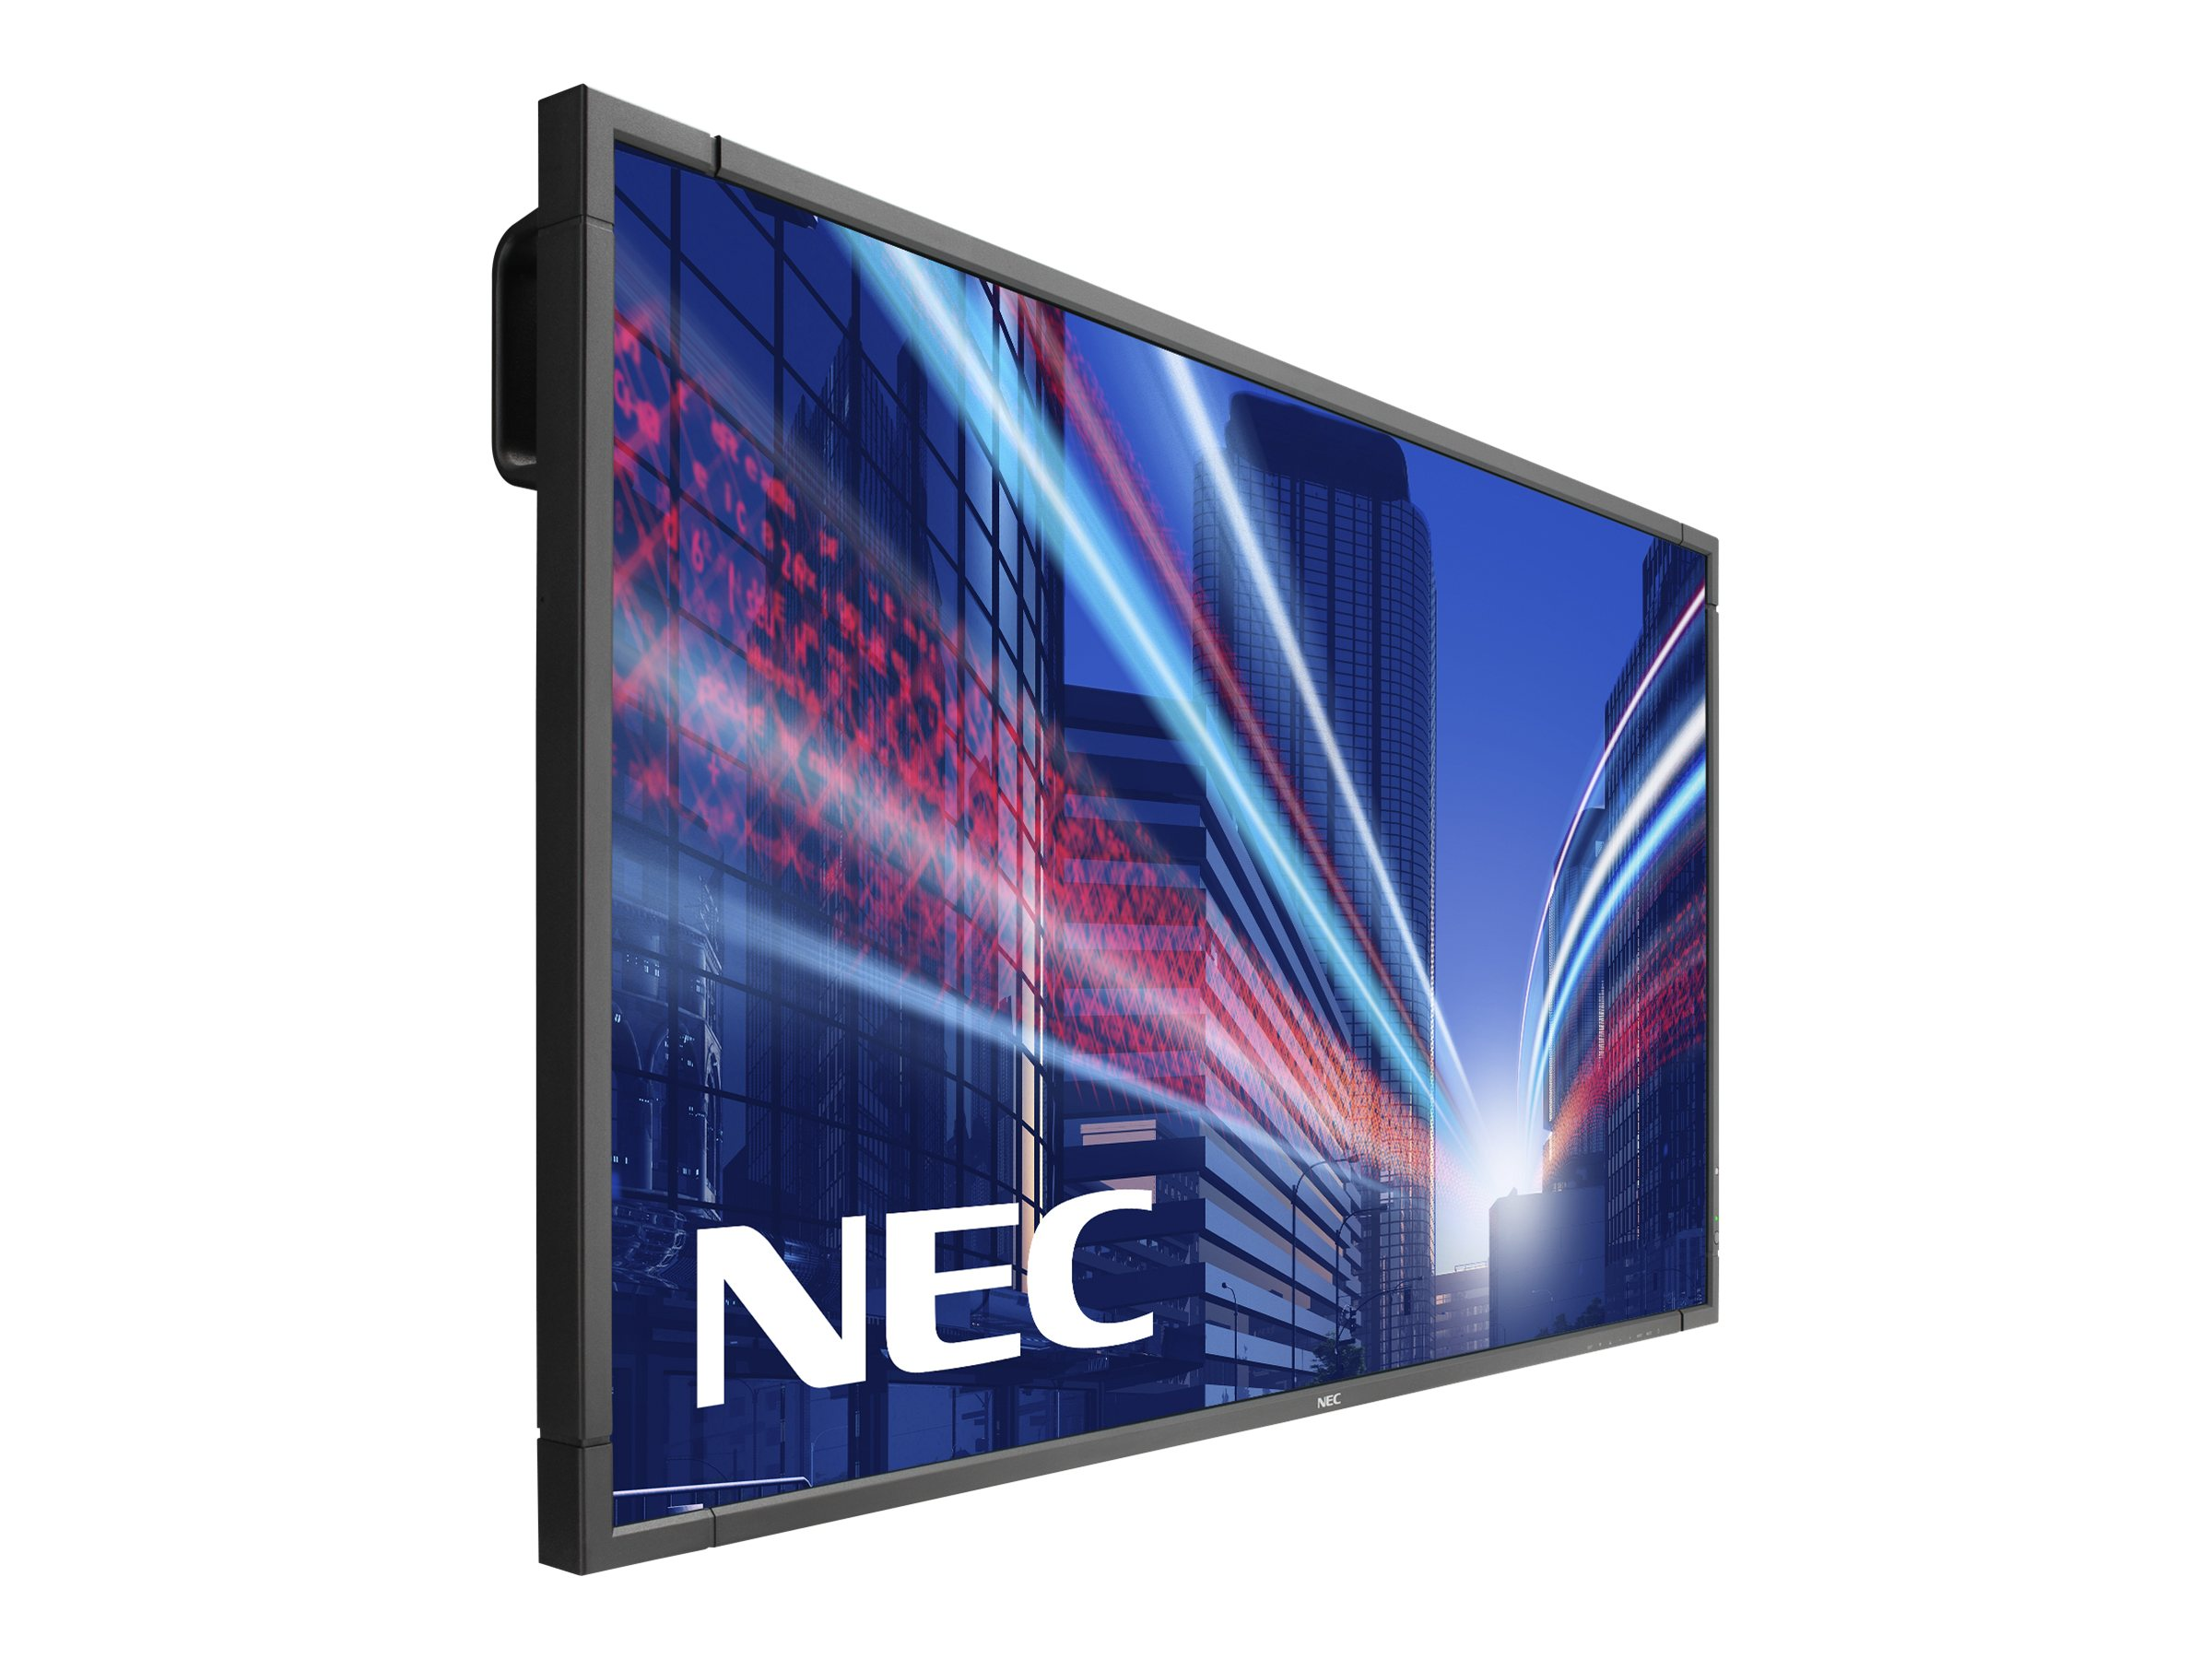 NEC 40 P403 Full HD LED-LCD Monitor, Black, P403, 16477410, Monitors - Large-Format LED-LCD